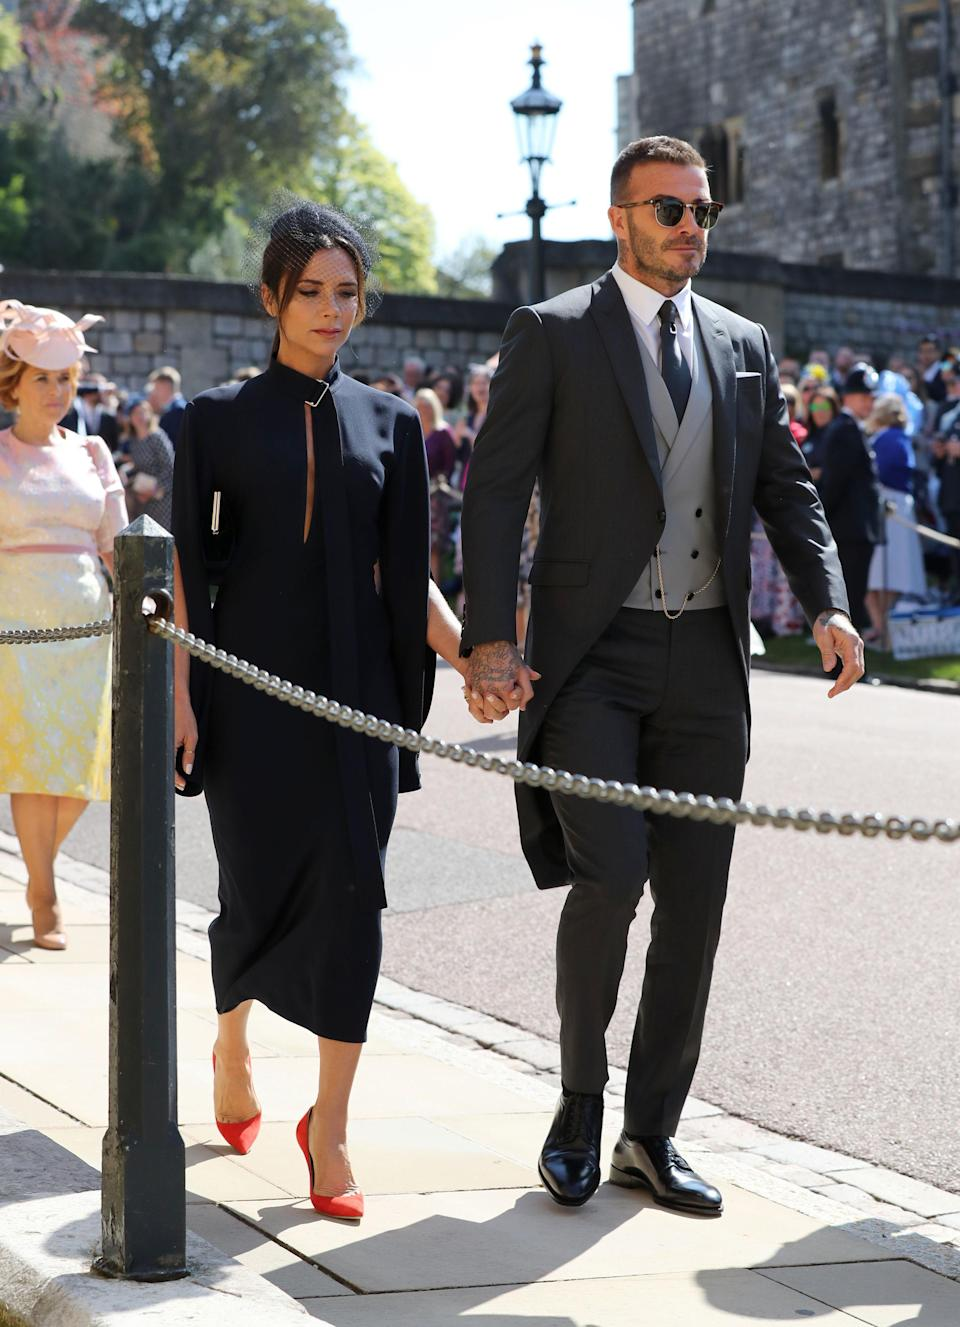 David and Victoria Beckham arrive at St George's Chapel in Windsor [Photo: Getty]